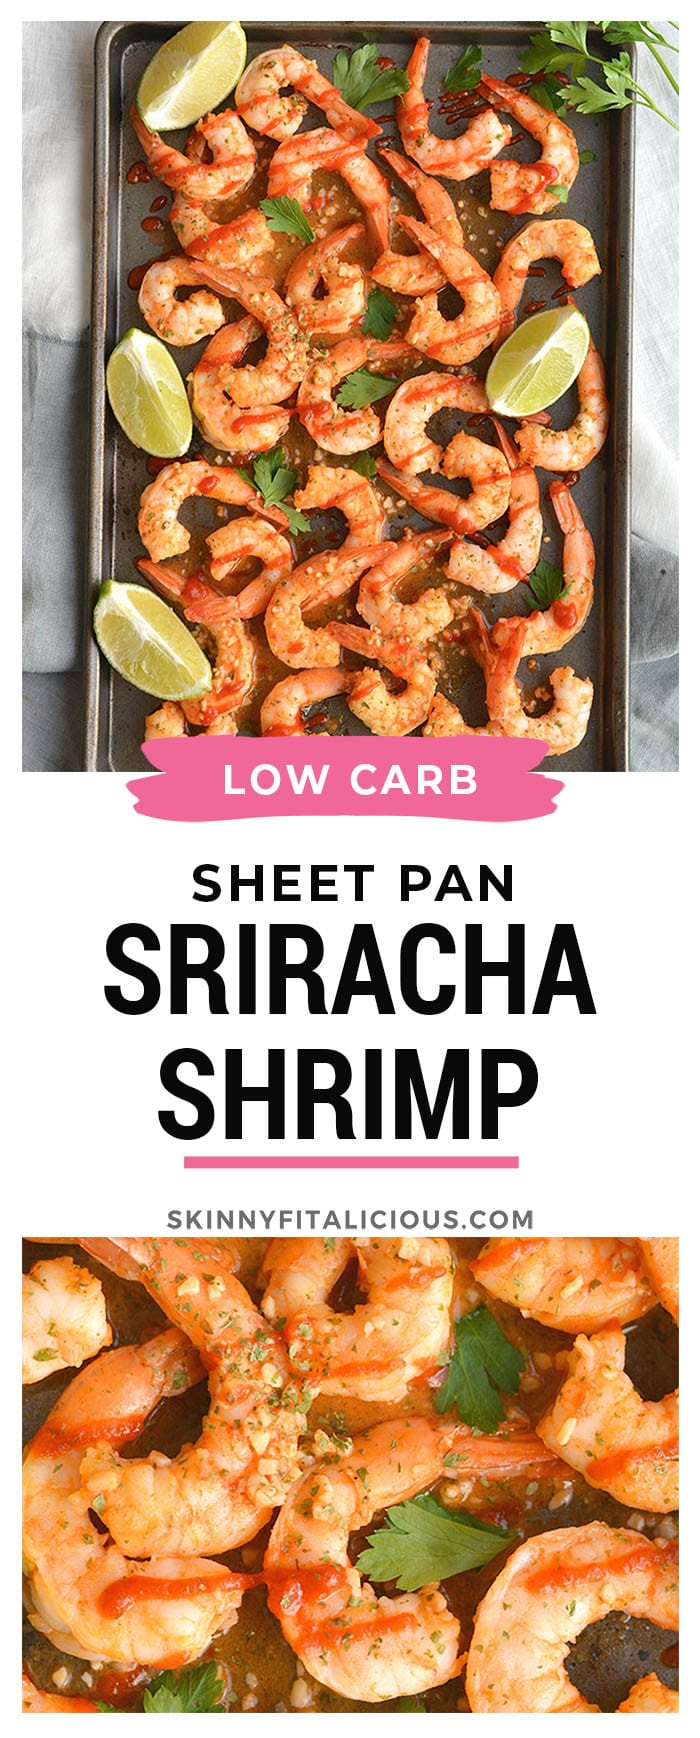 Spicy Sriracha Shrimp made two ways! Tender shrimp tossed in garlic, lime and Sriracha then cooked to perfection. A low carb, Gluten Free and Paleo meal made in less than 15 minutes! Gluten Free + Low Calorie + Paleo + Low Carb